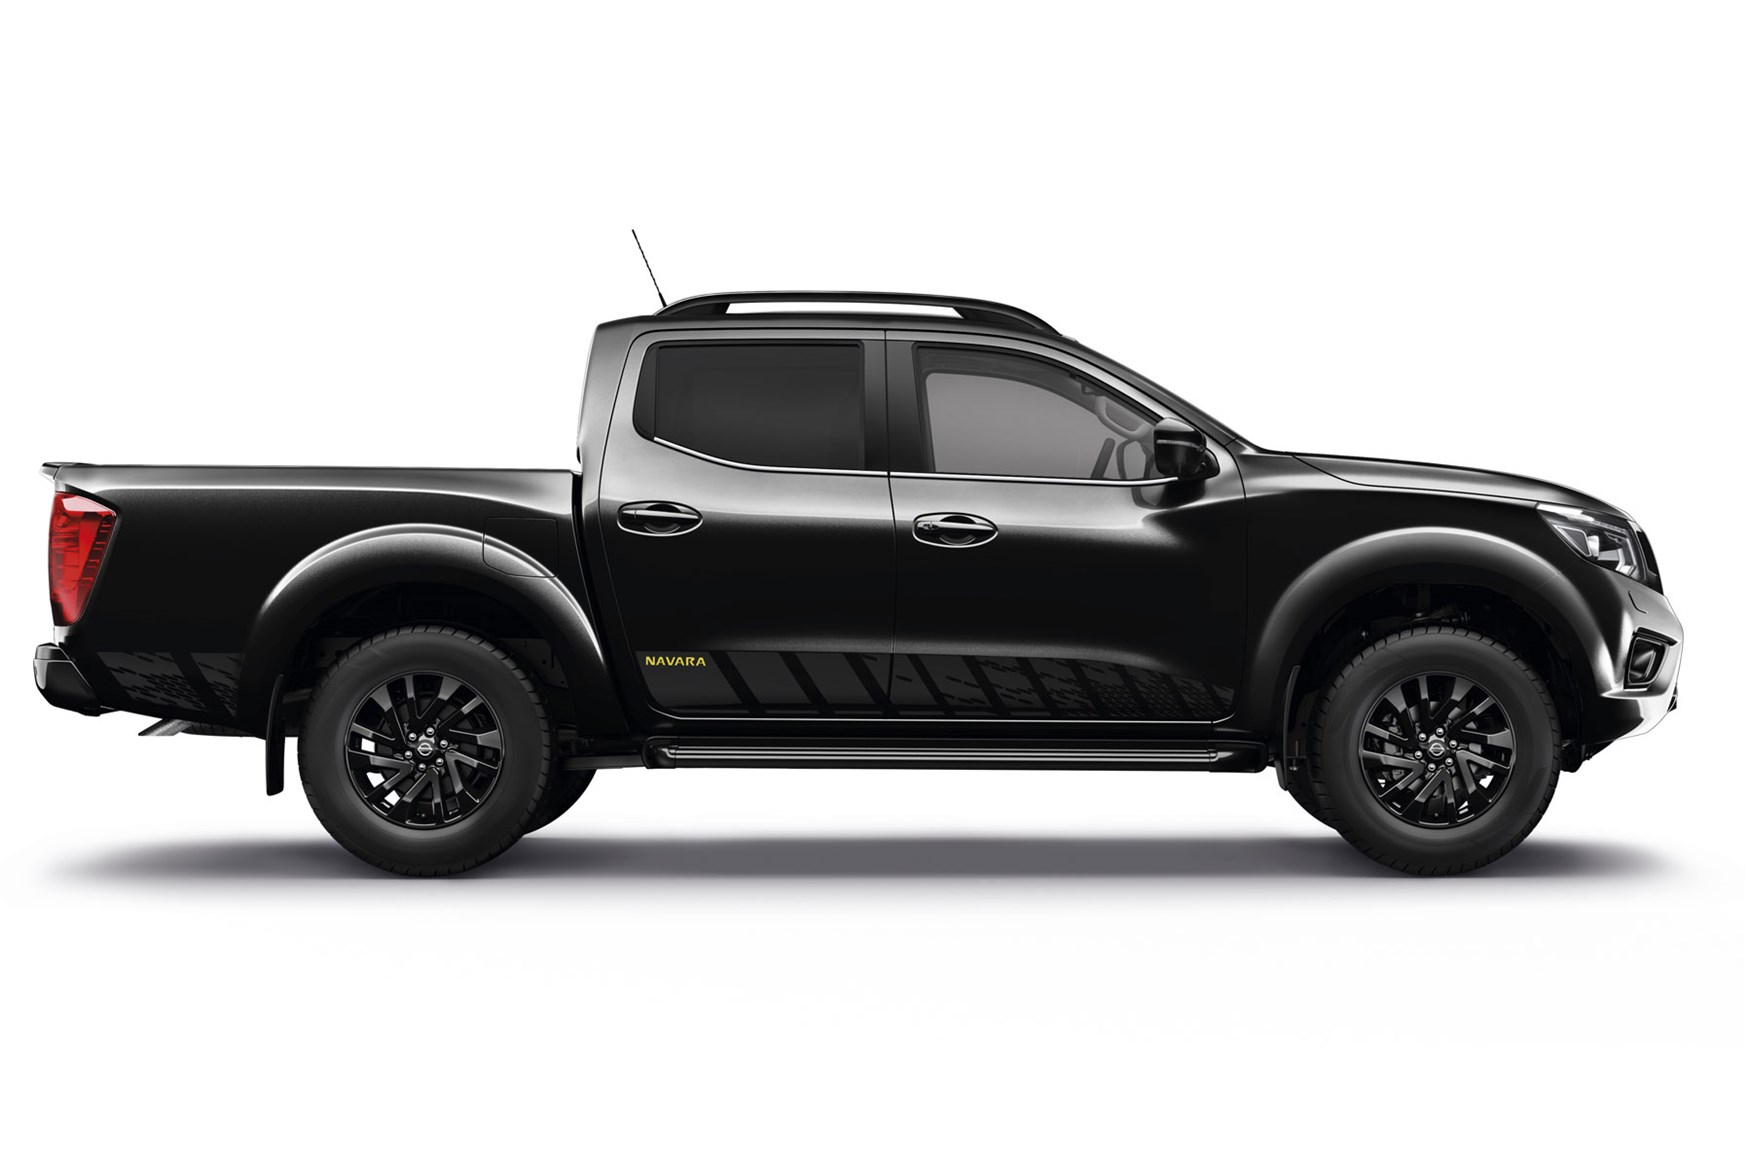 Nissan Navara N Guard Special Edition Pickup At The 2018